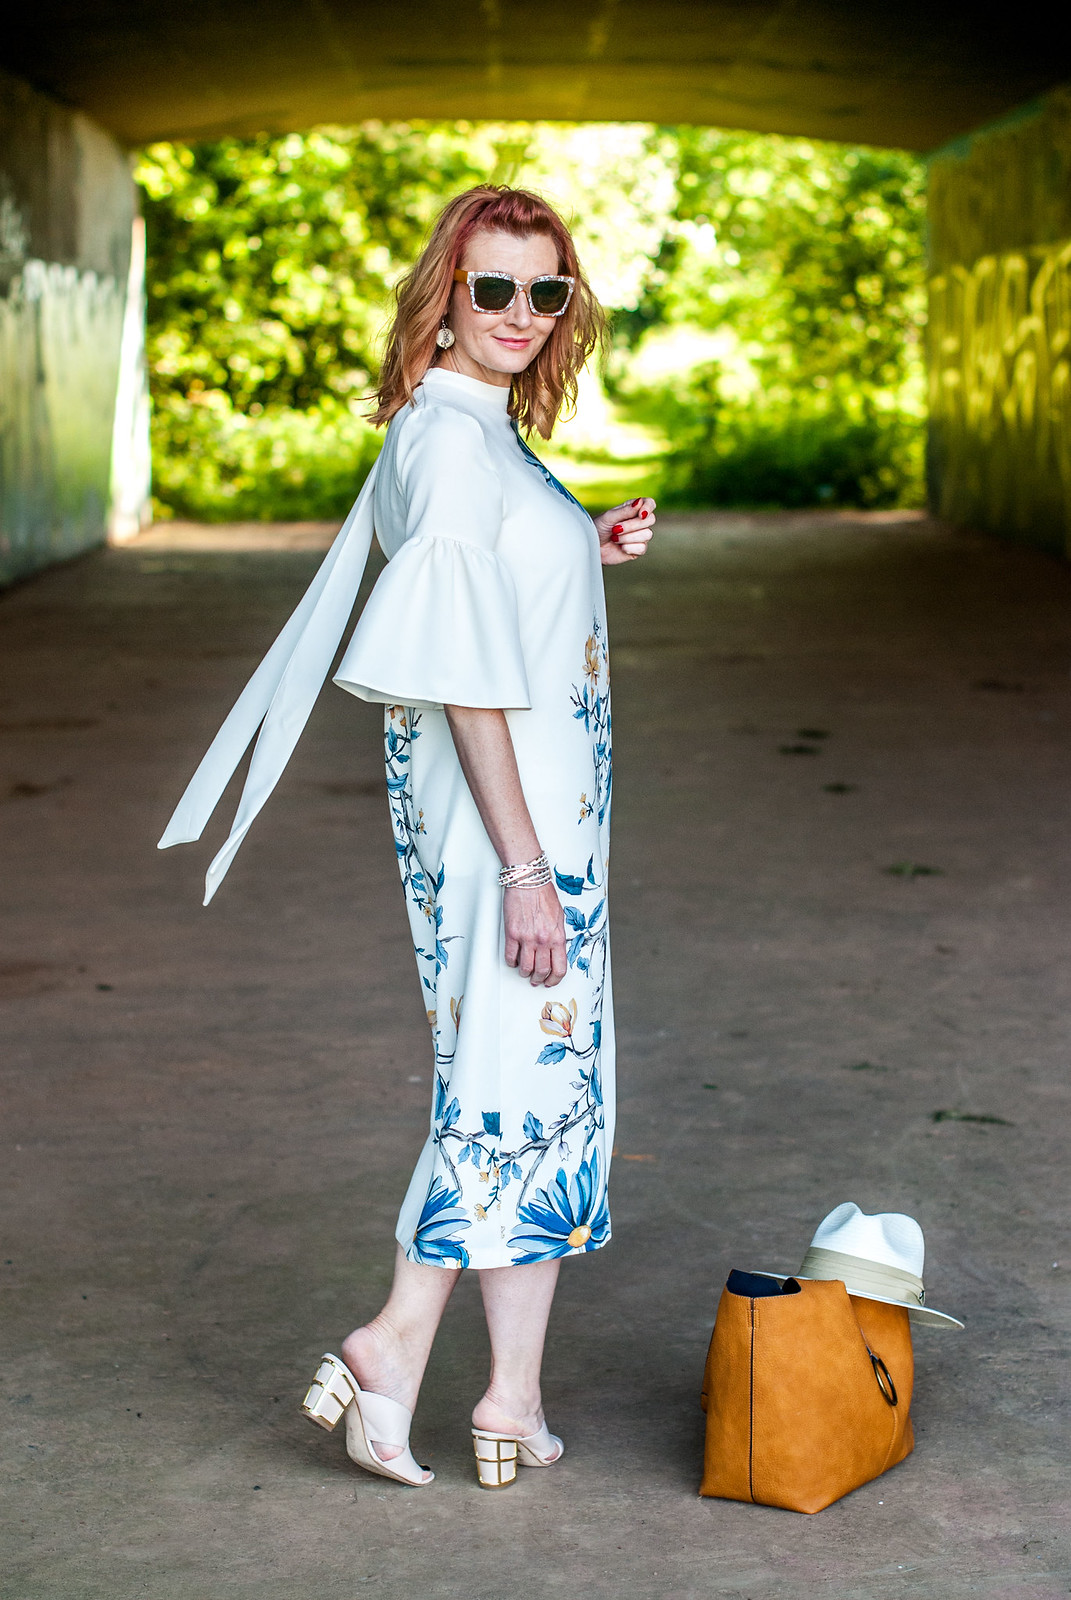 Wedding guest or garden party outfit: Marks & Spencer floral midi dress with flared sleeves \ nude cage heel mules \ pearl sunglasses | Not Dressed As Lamb, over 40 style